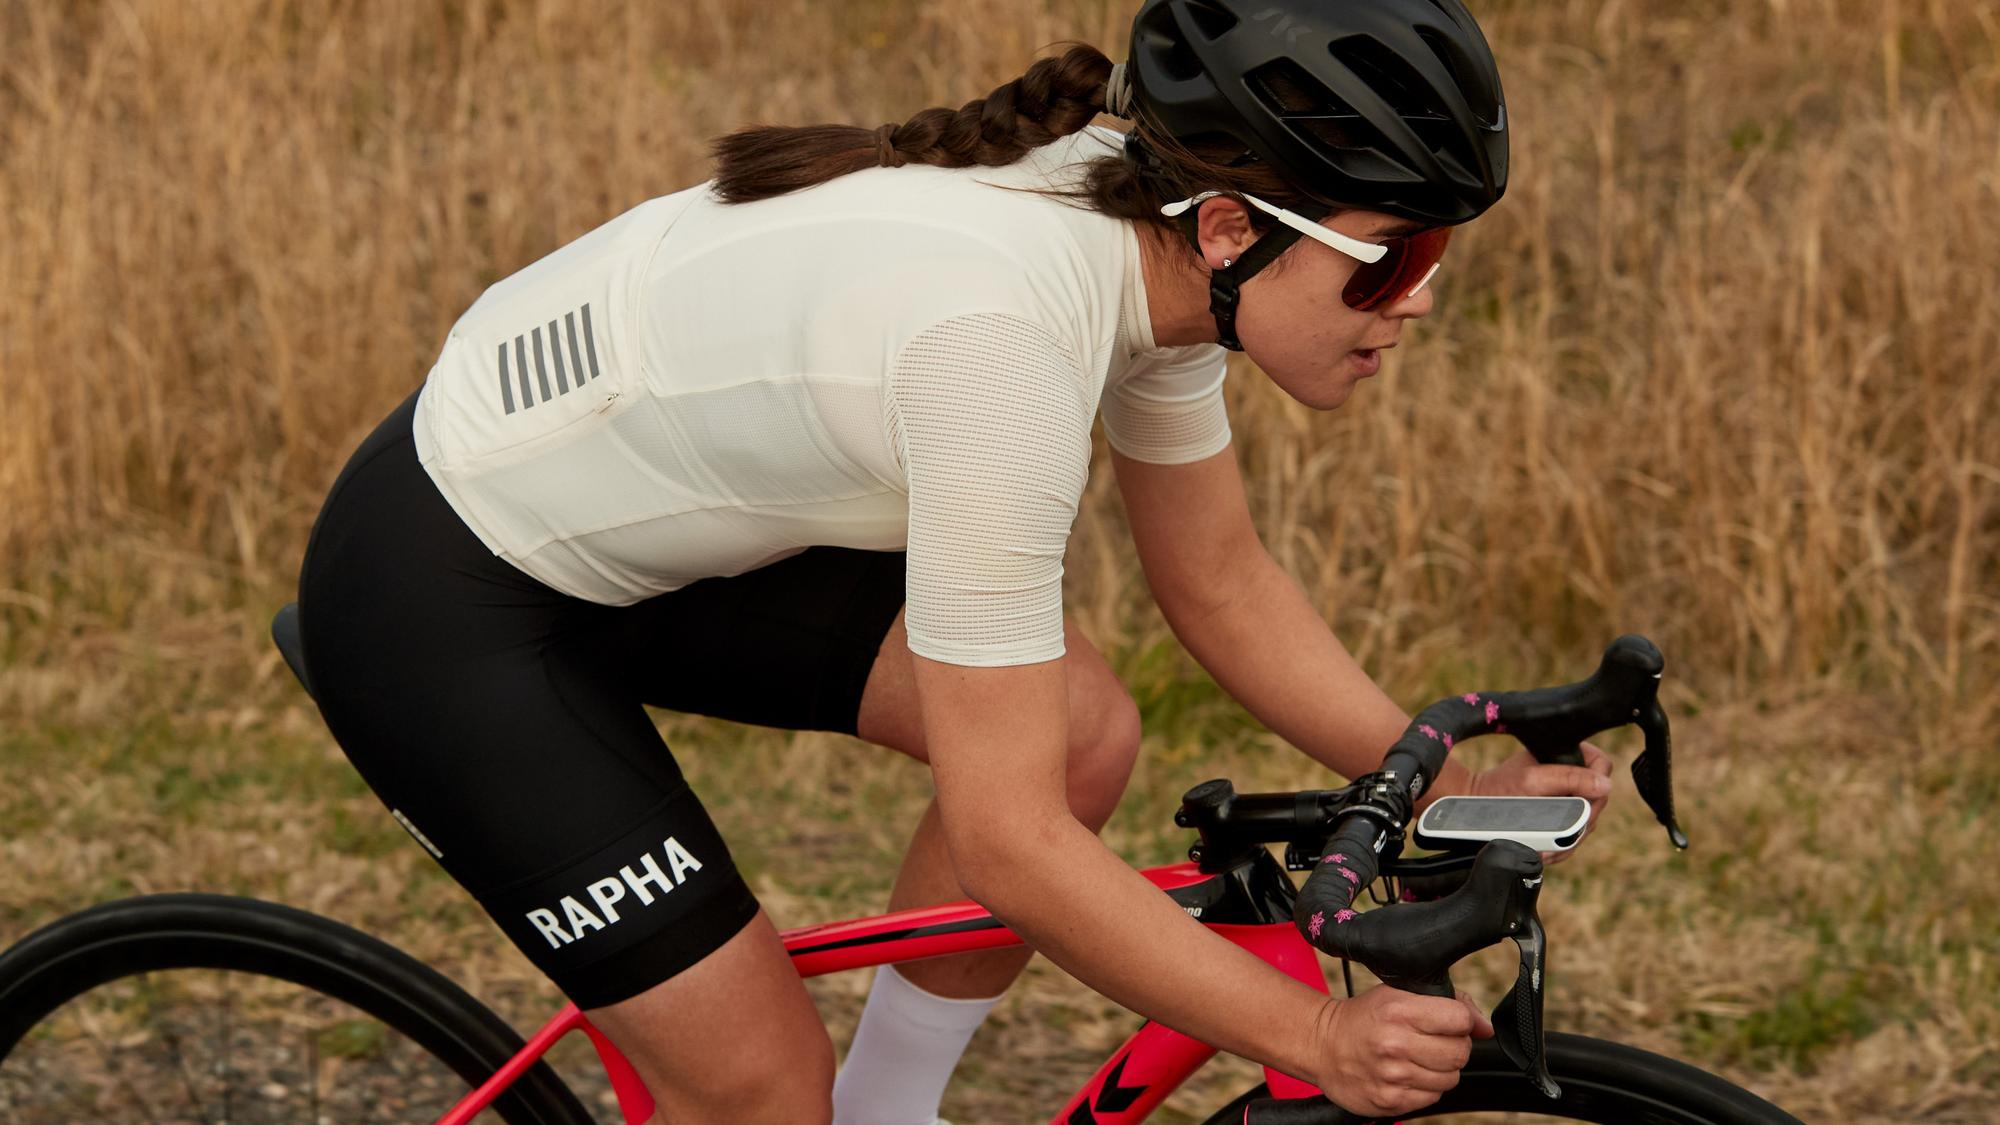 Cycling Jerseys for Summer